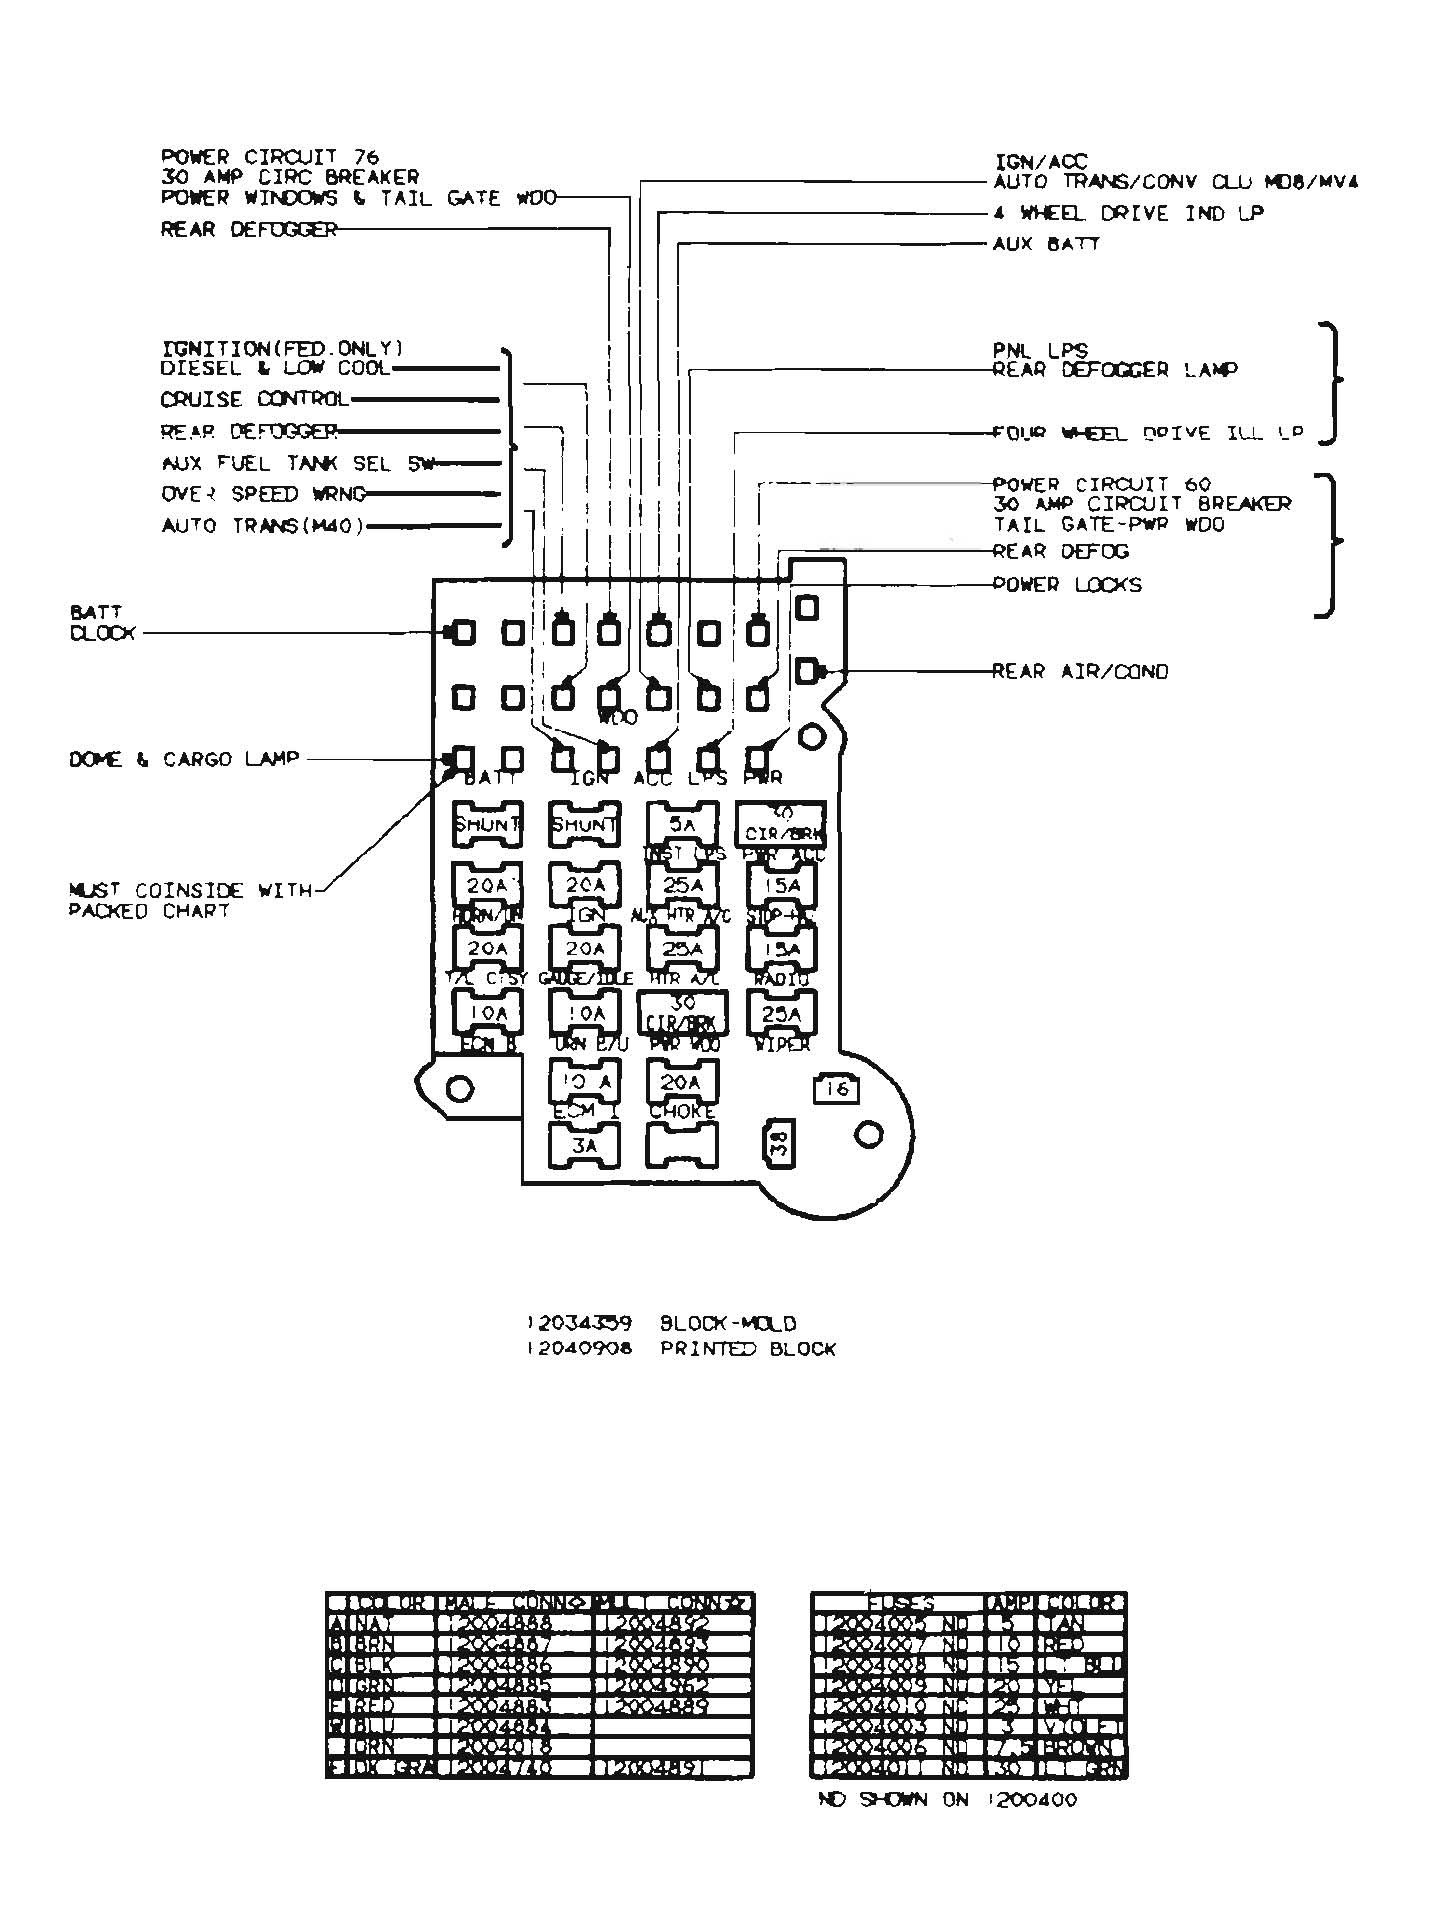 hight resolution of 79 chevy truck fuse box wiring diagram fascinating1979 chevy fuse box diagram wiring diagram user 79